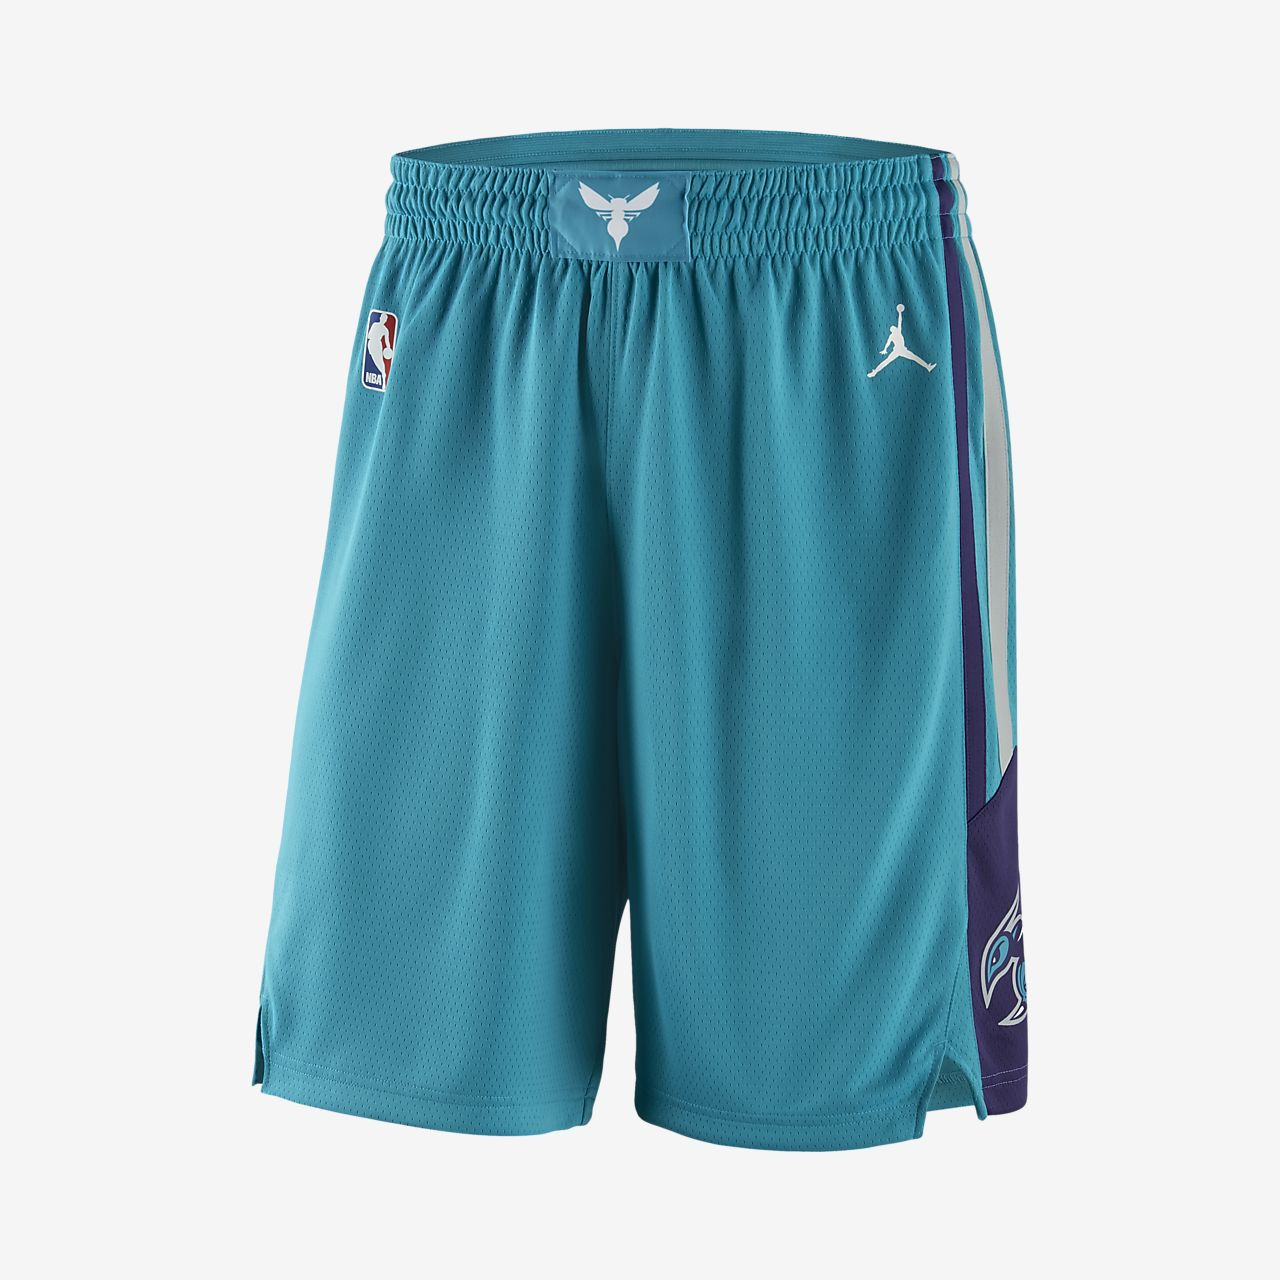 Charlotte Hornets Jordan Icon Edition Swingman Pantalons curts de l'NBA - Home